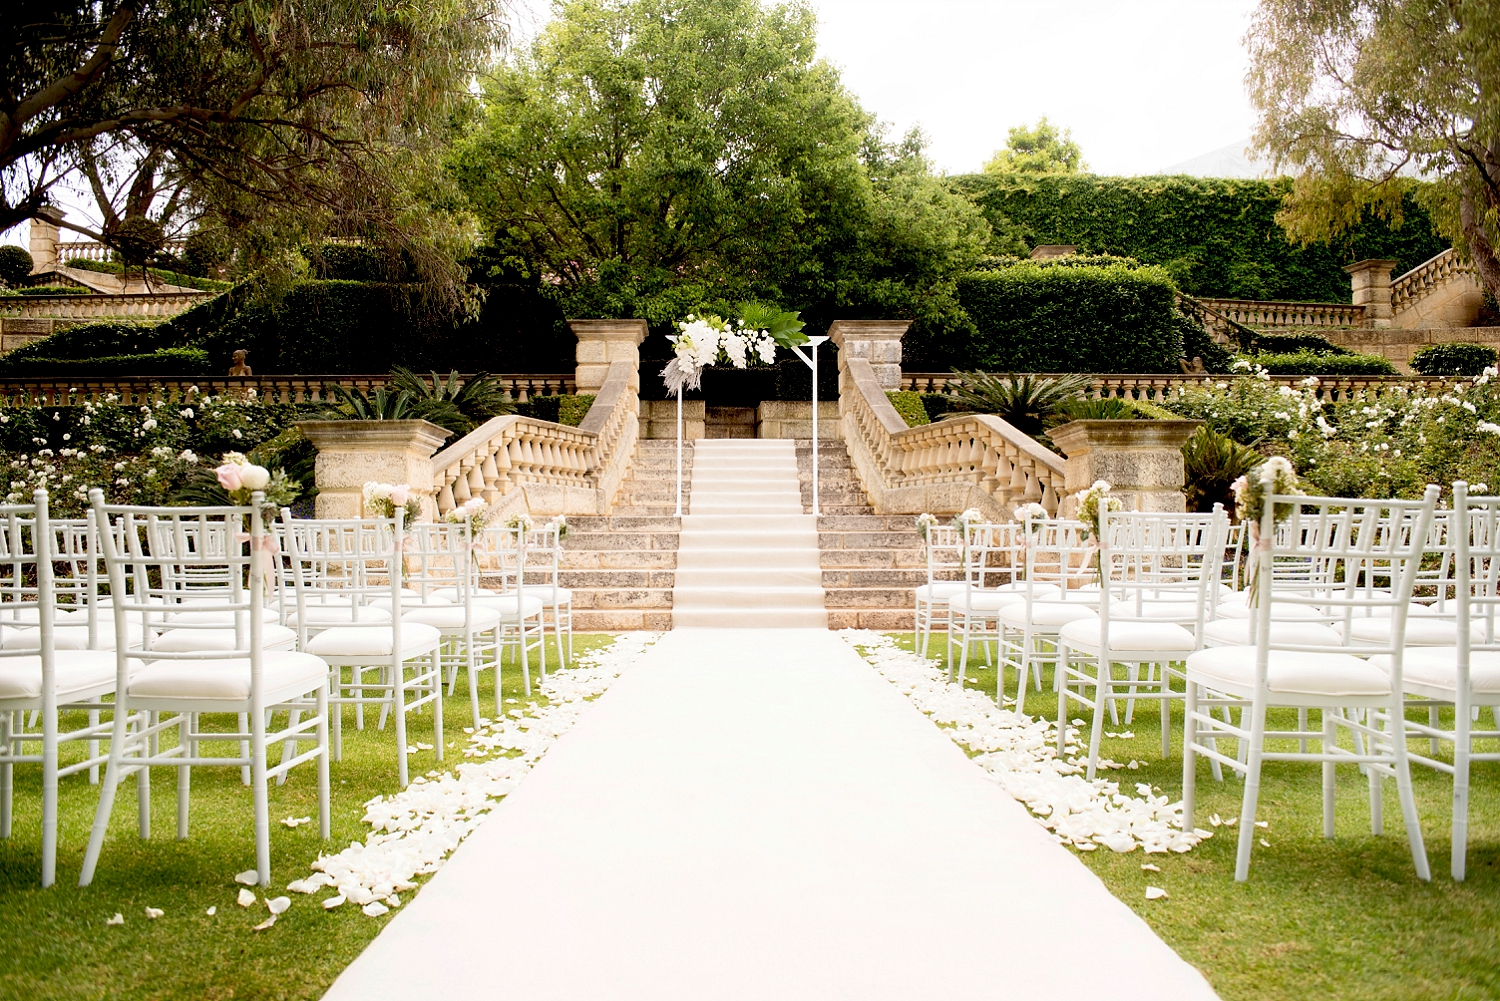 13_caversham house sunken gardens wedding perth.jpg